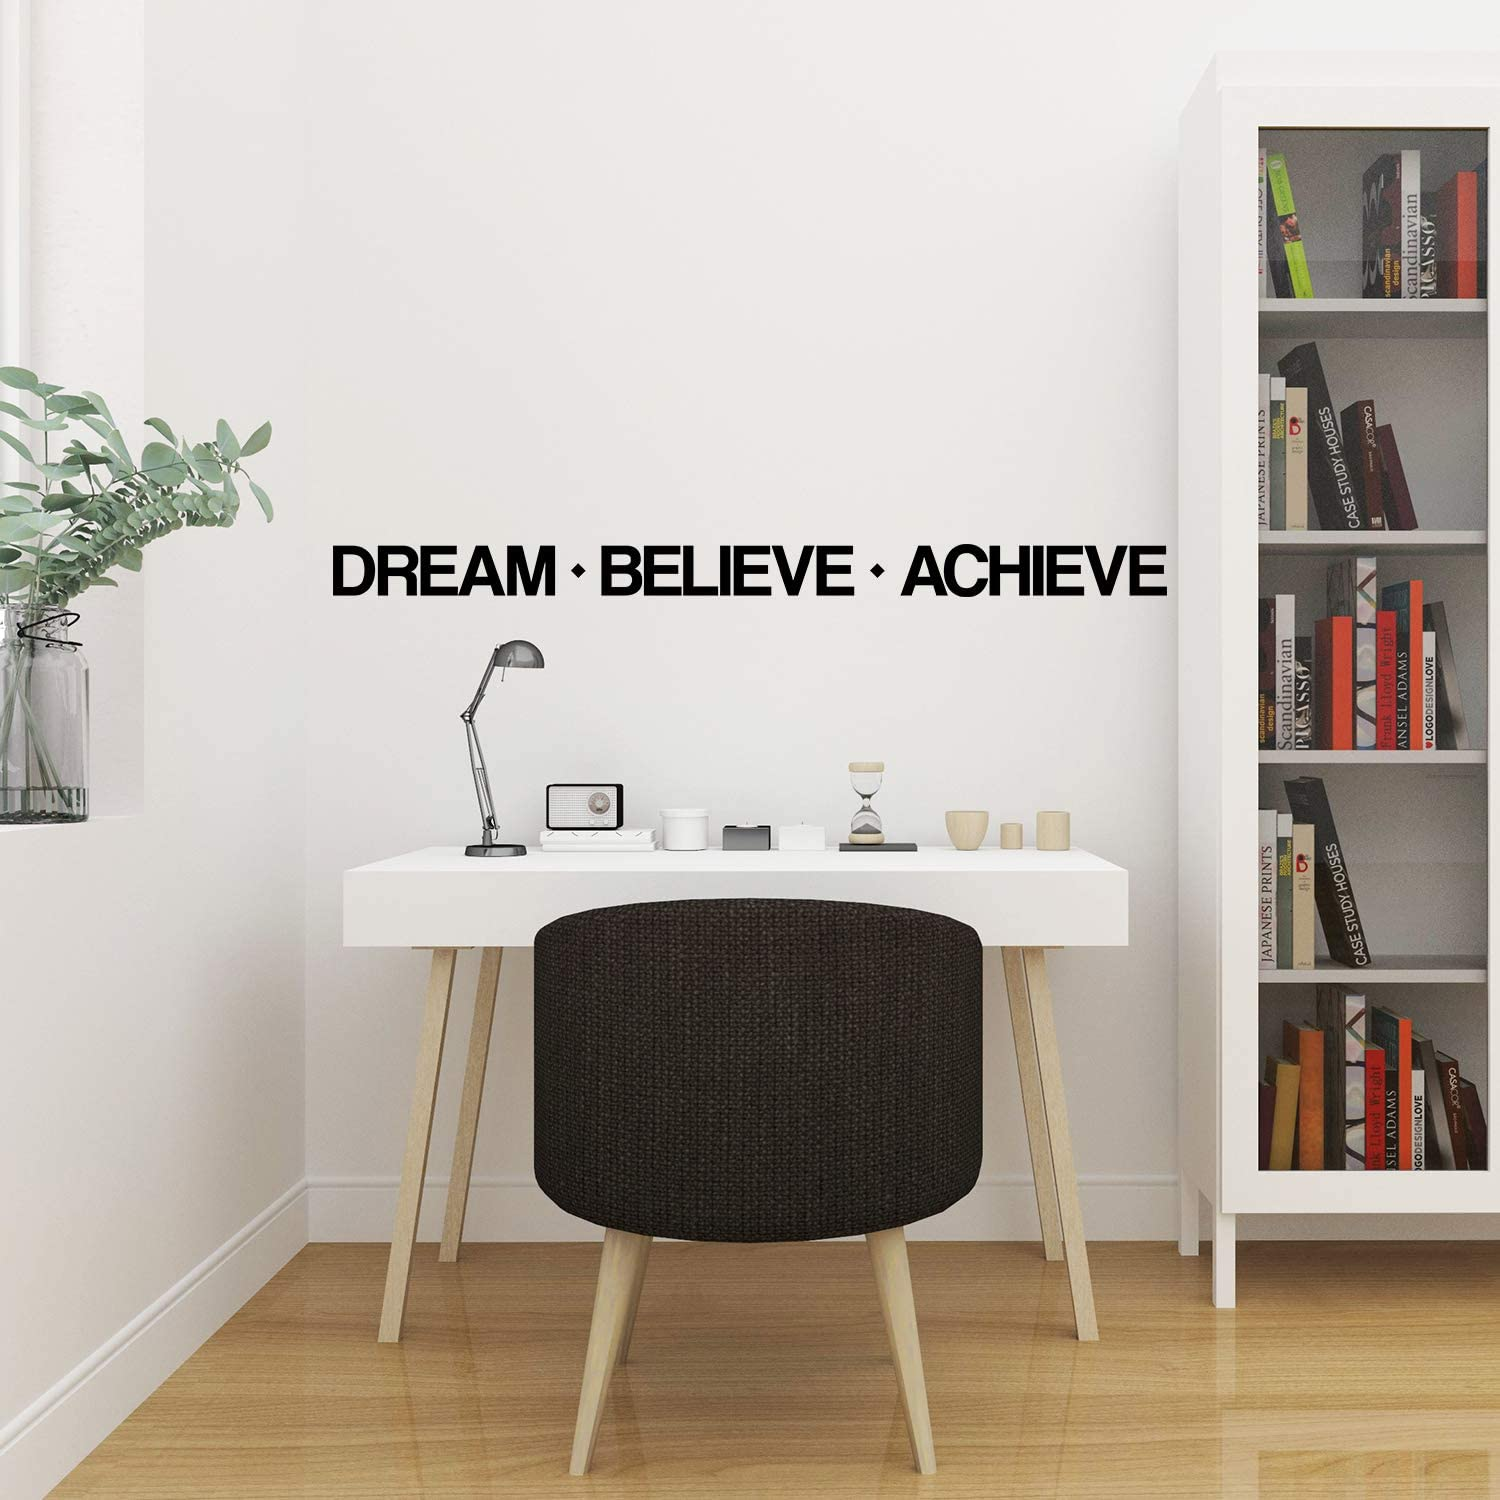 My Vinyl Story Dream Believe Achieve Wall Sticker Inspirational Wall Decal Motivational Office Decor Quote Inspired Gym Motivated Wall Art Vinyl Wall Decal School Classroom Words and Saying 108x7 in